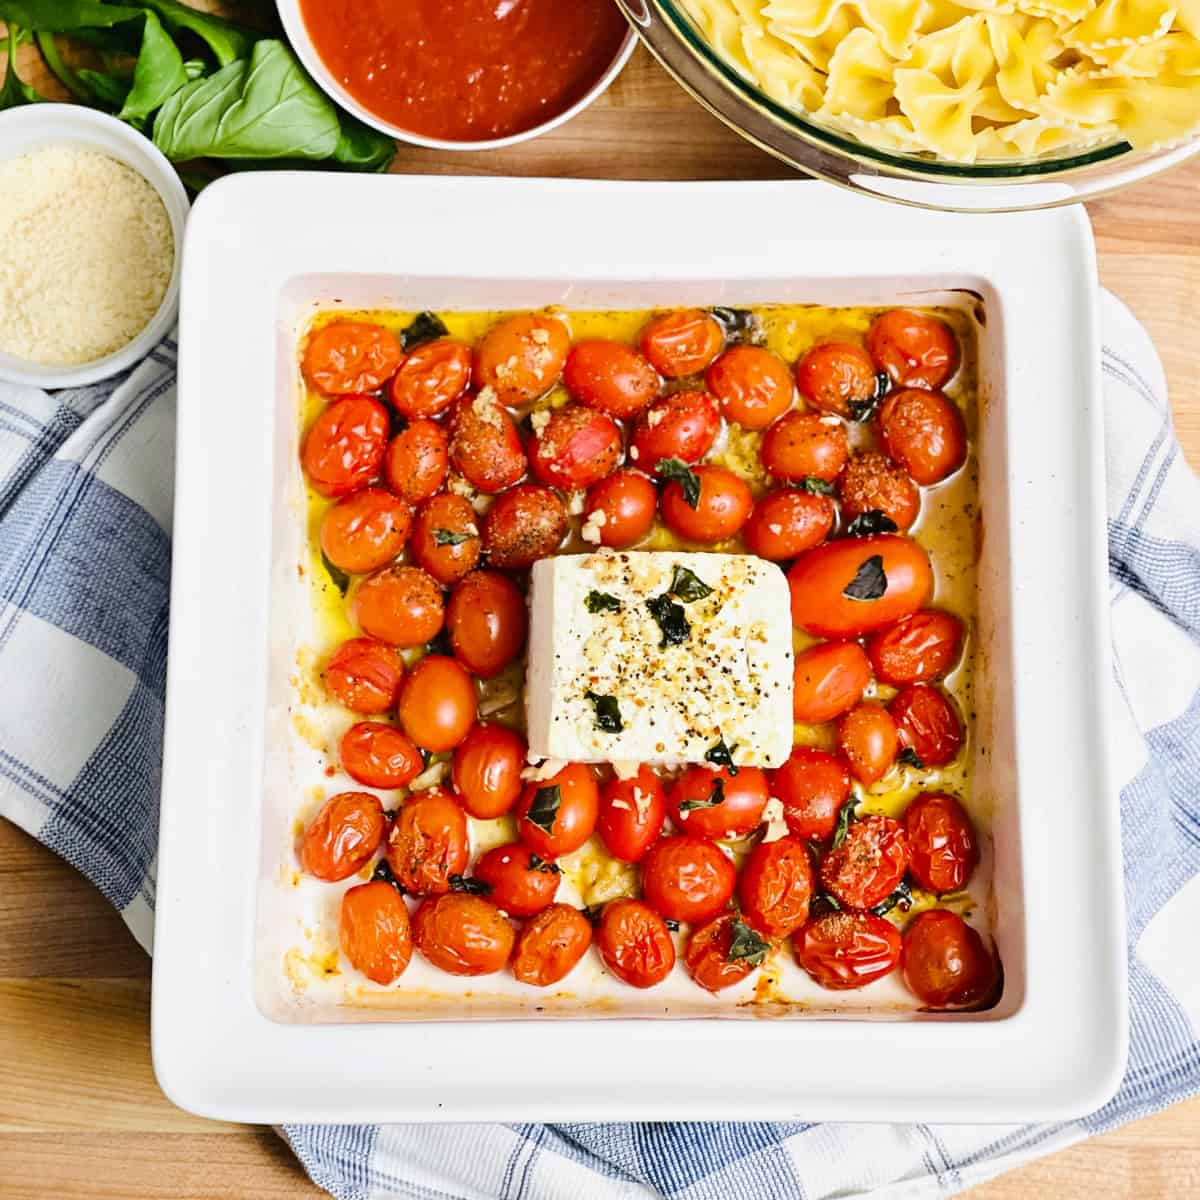 Tiktok Baked Feta Pasta Recipe How To Make It Even More Amazing